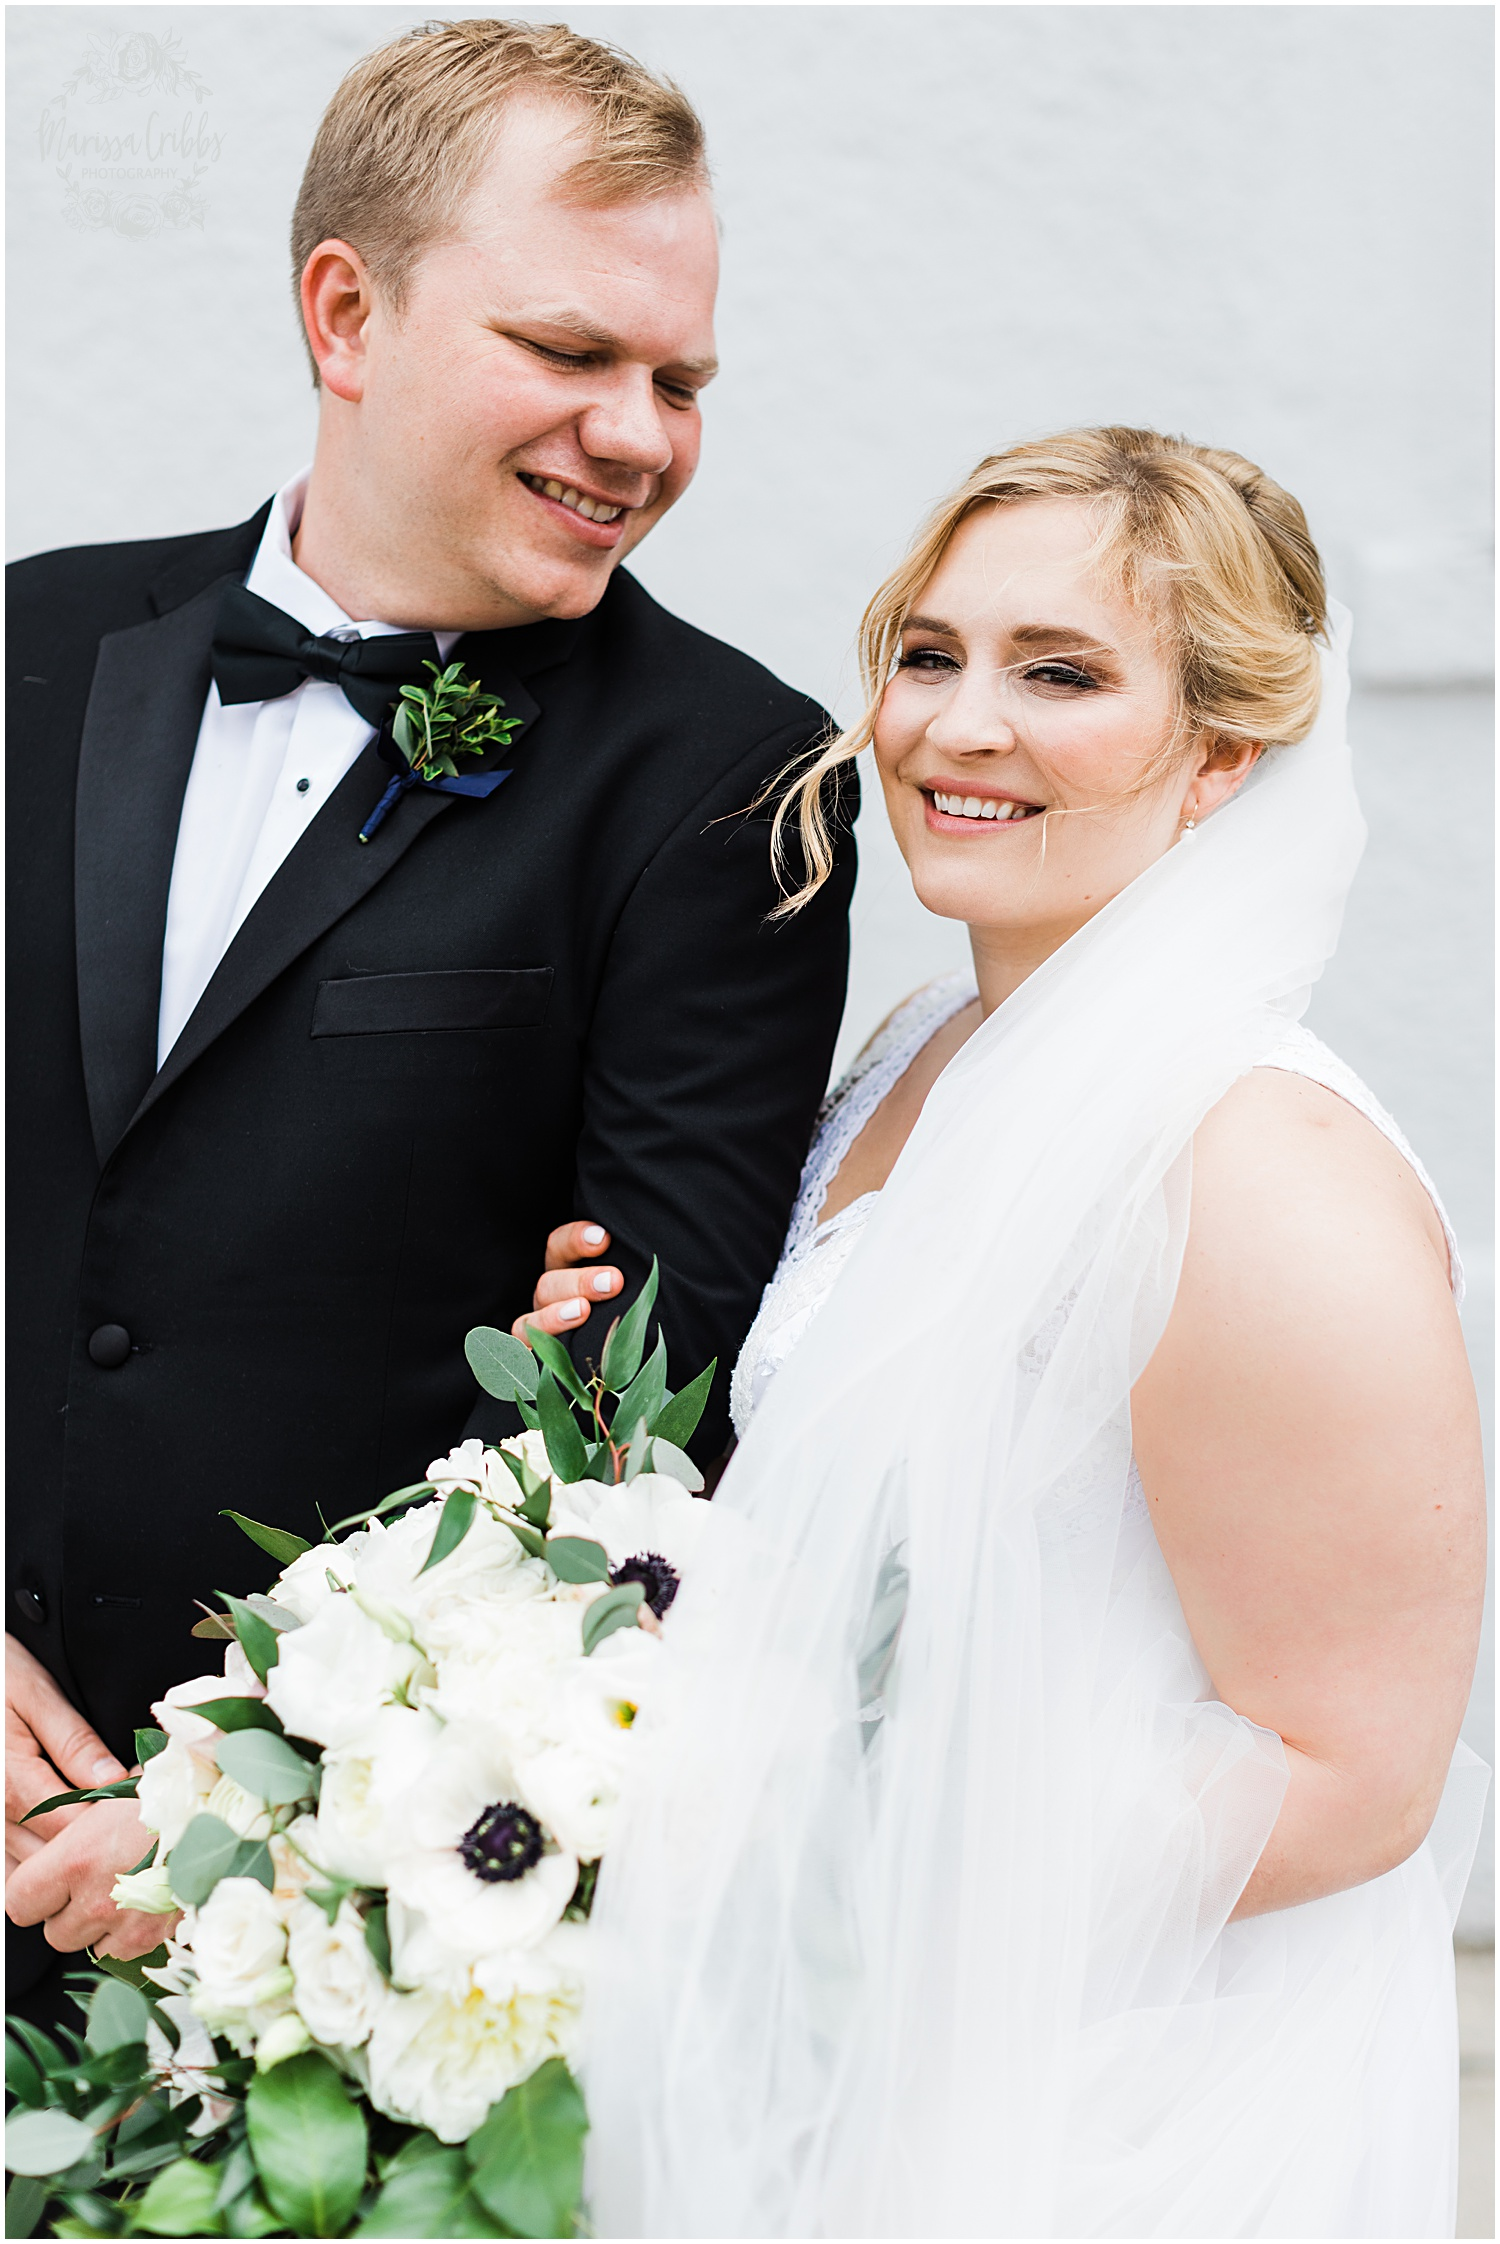 RACHEL & SCOTT MARRIED | MARISSA CRIBBS PHOTOGRAPHY_7671.jpg